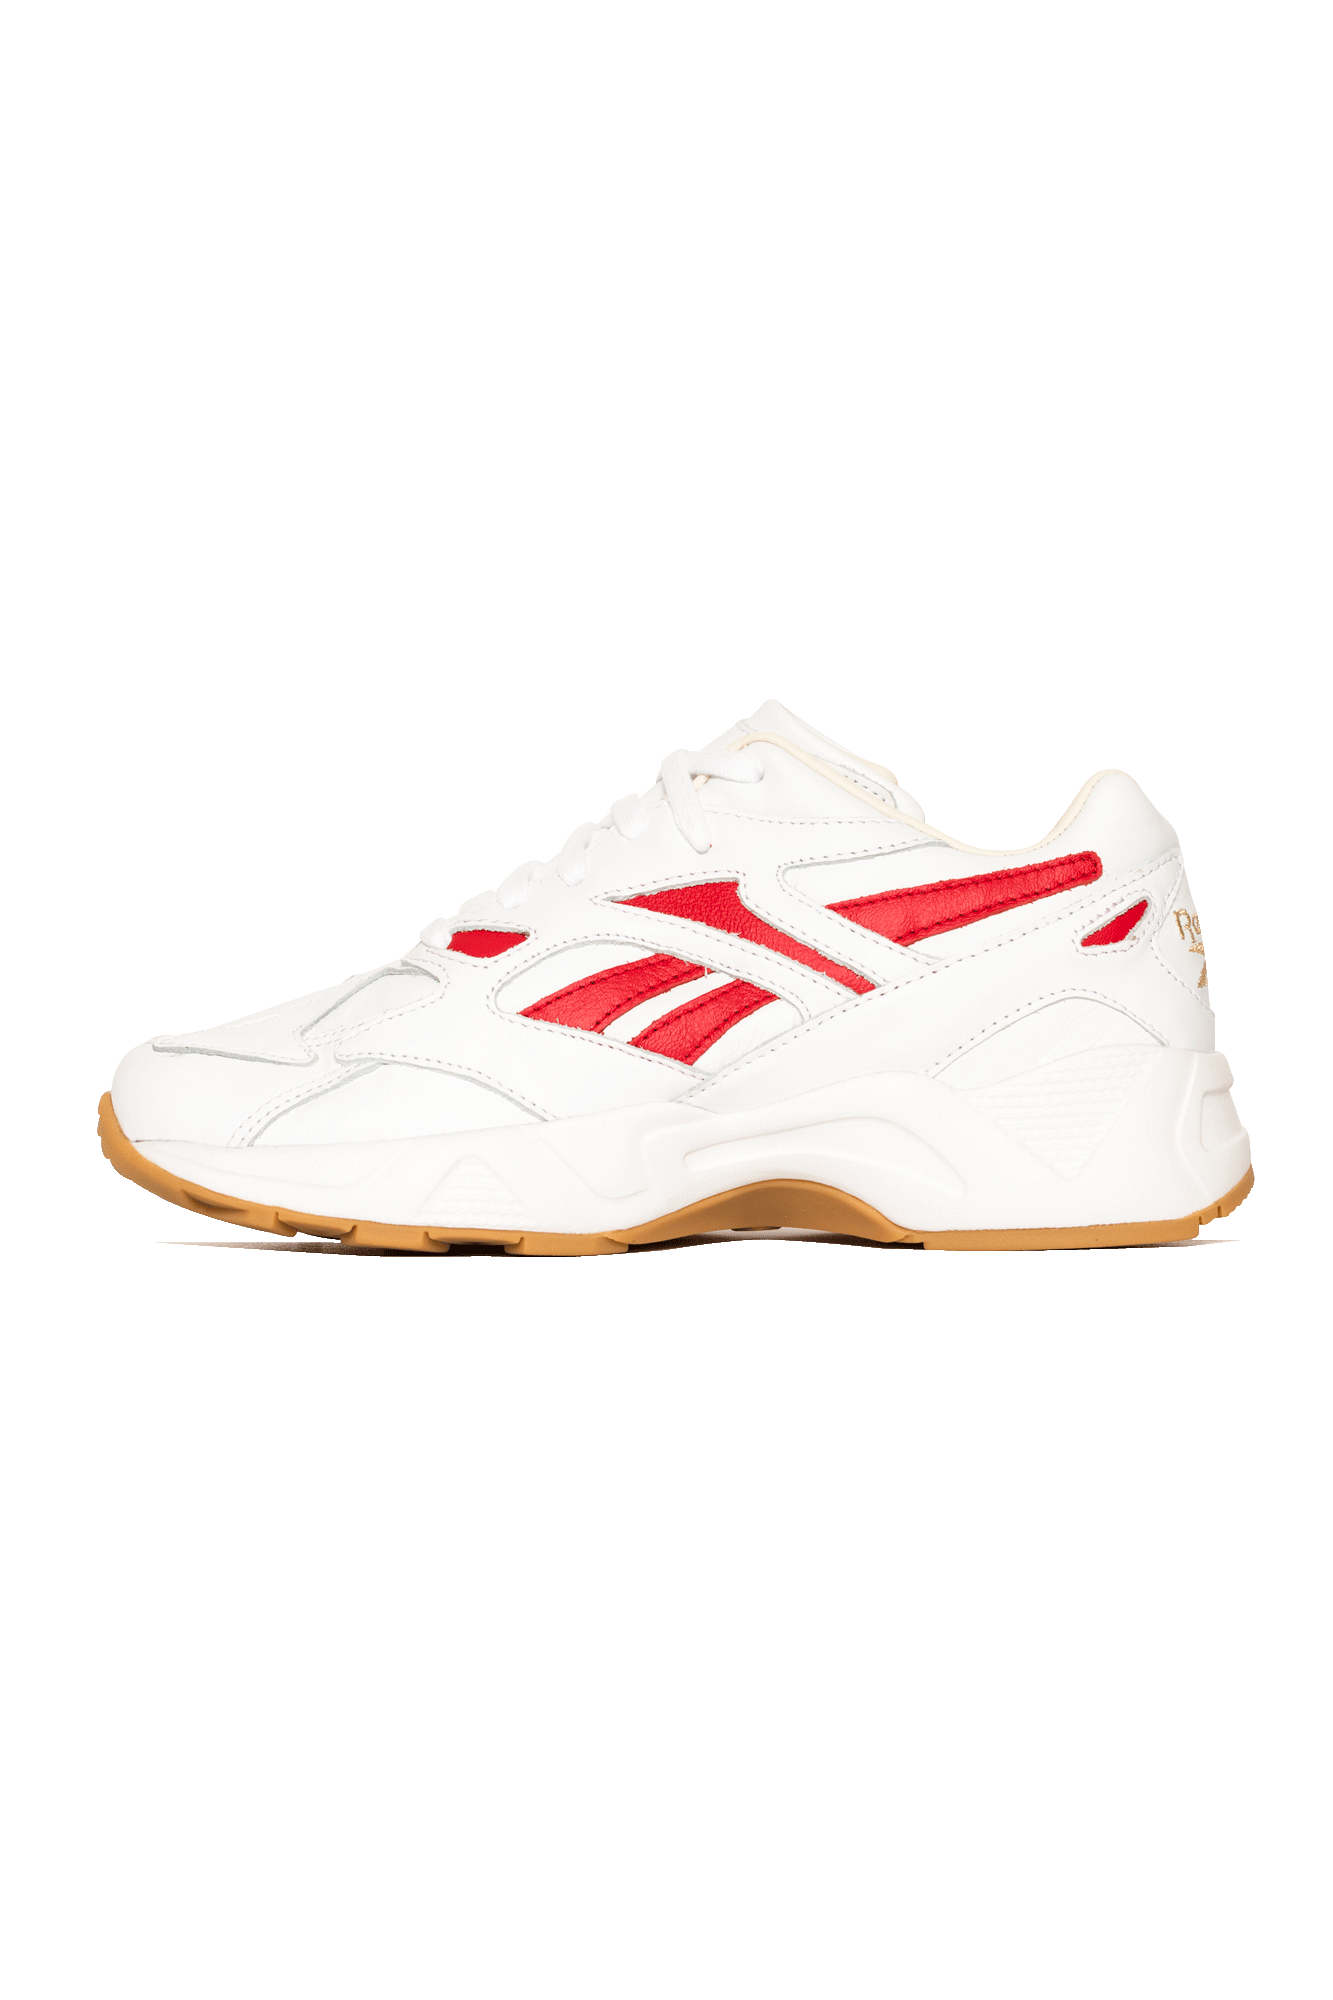 19 Best Reebok images   Reebok, Sneakers, This or that questions